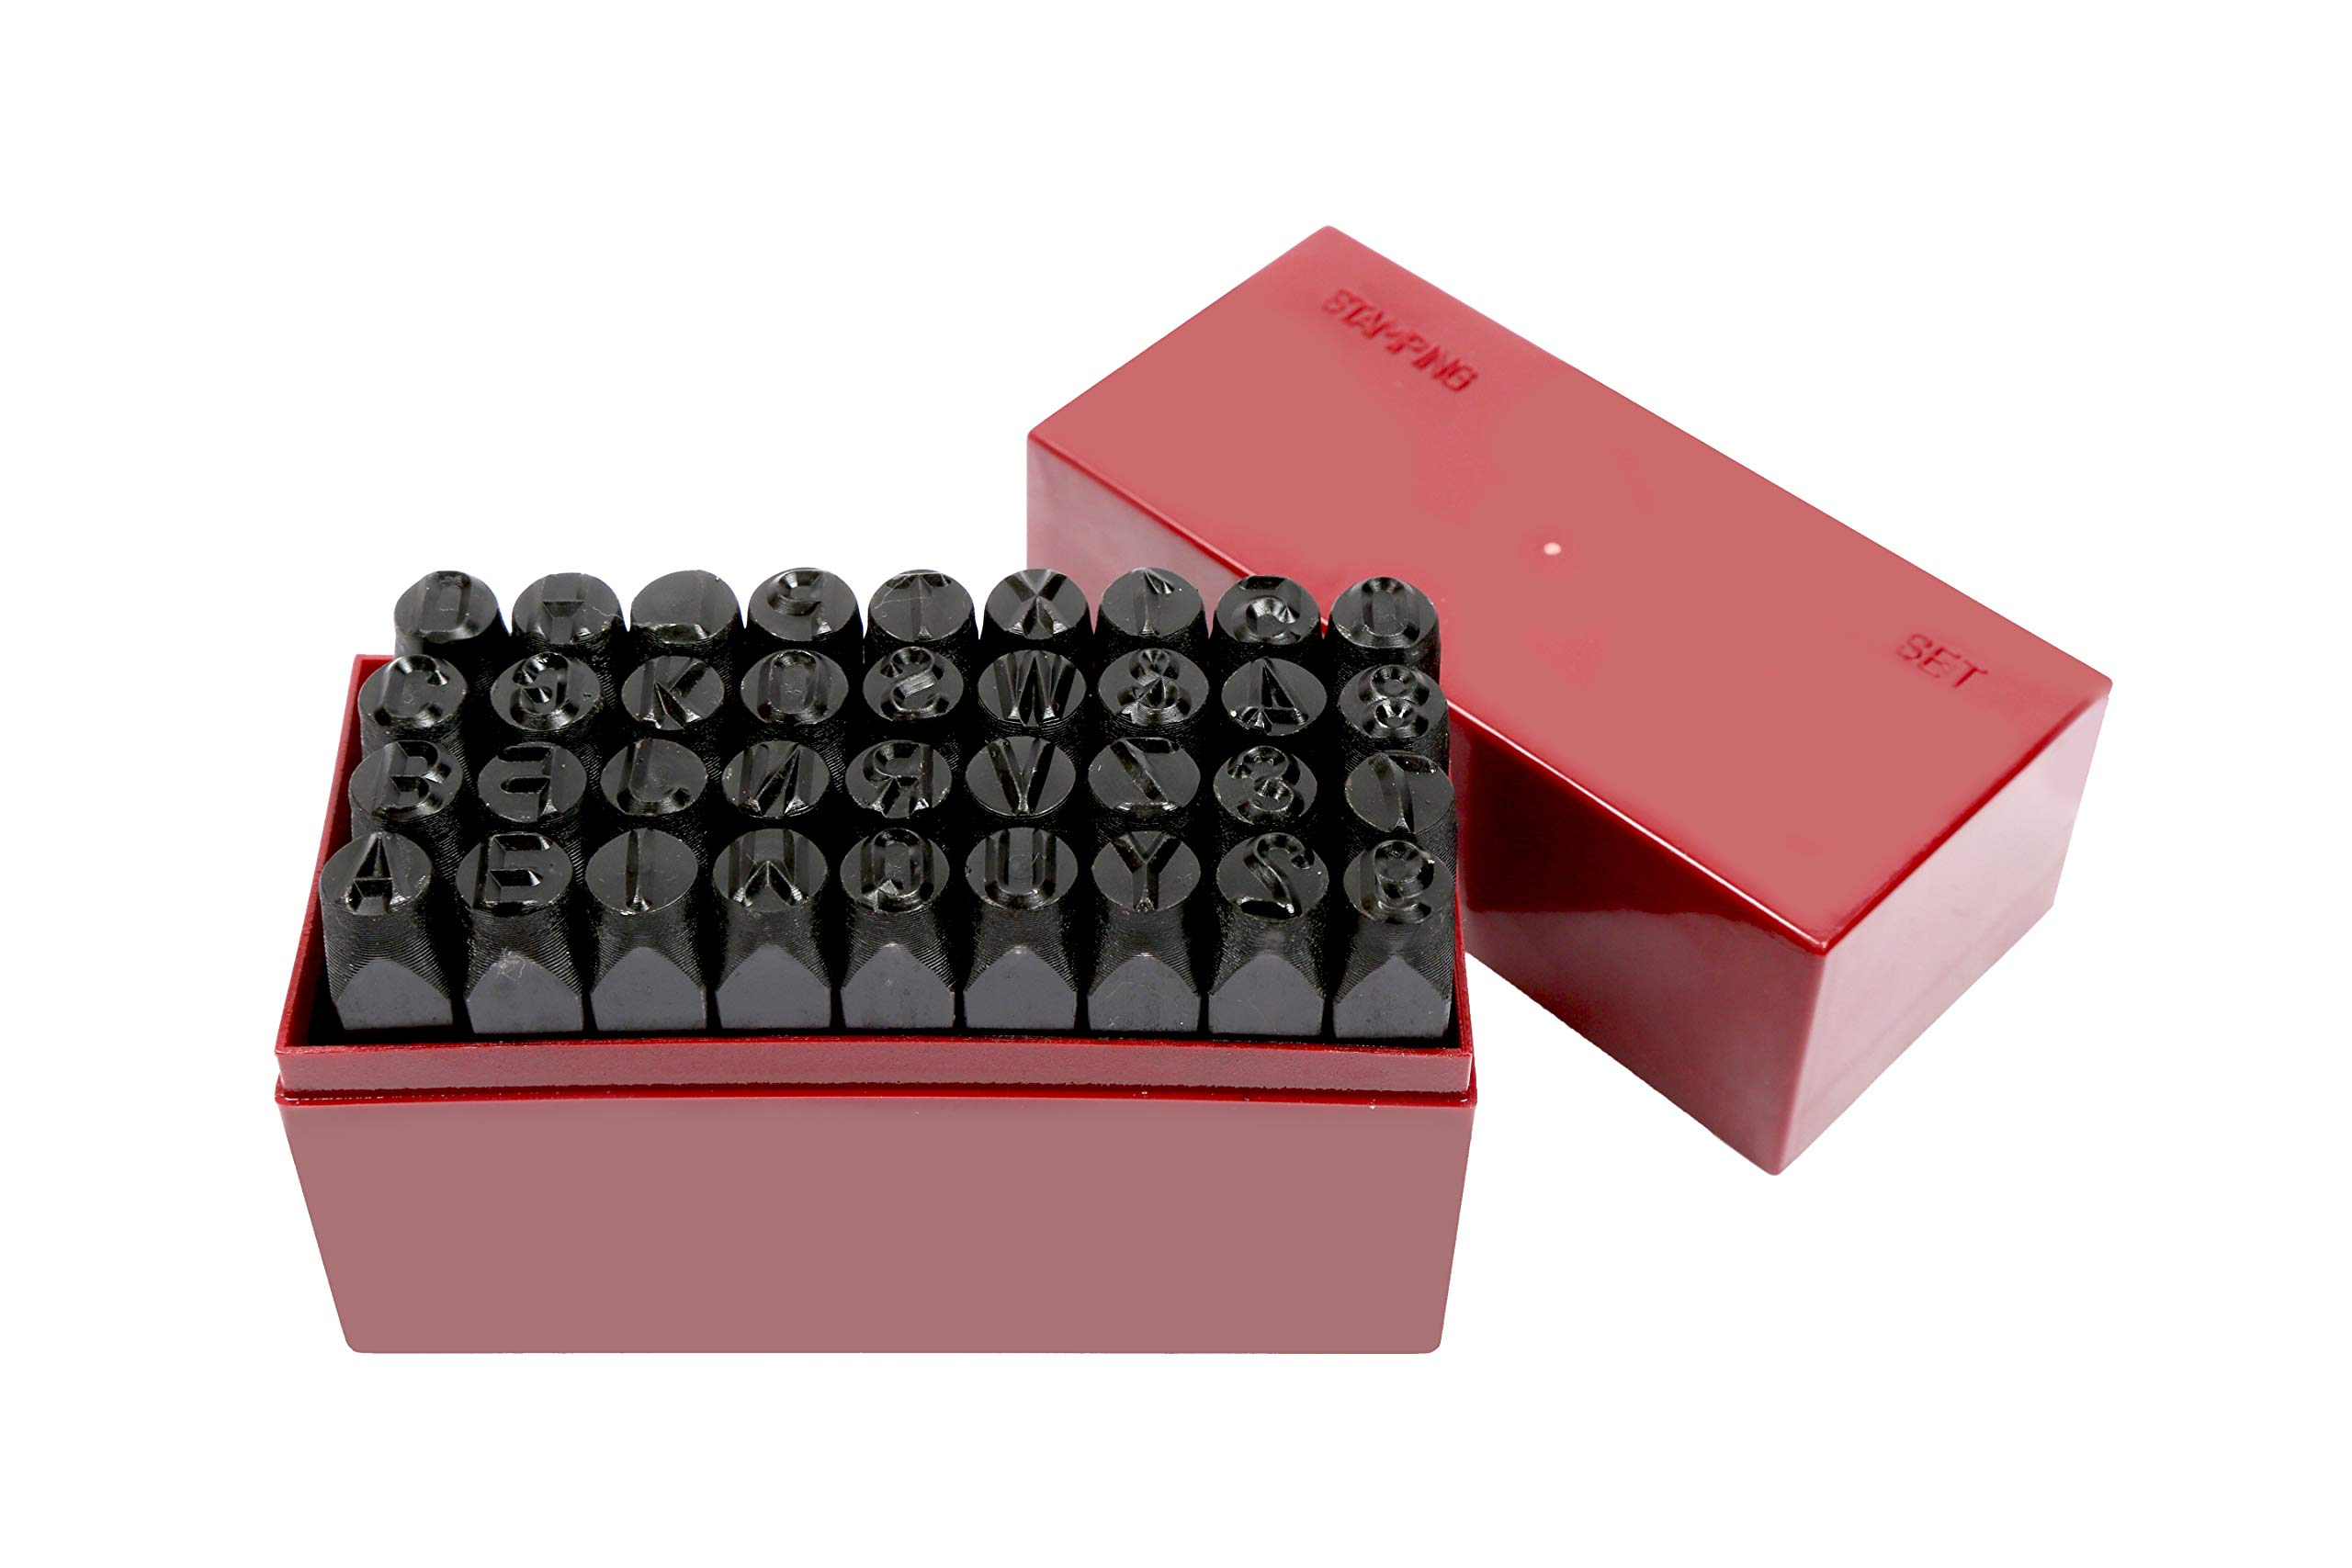 36 pc 3/8'' Steel Metal Punch Letter & Number Stamp Stamping Kit Set With Case by Vector Tools